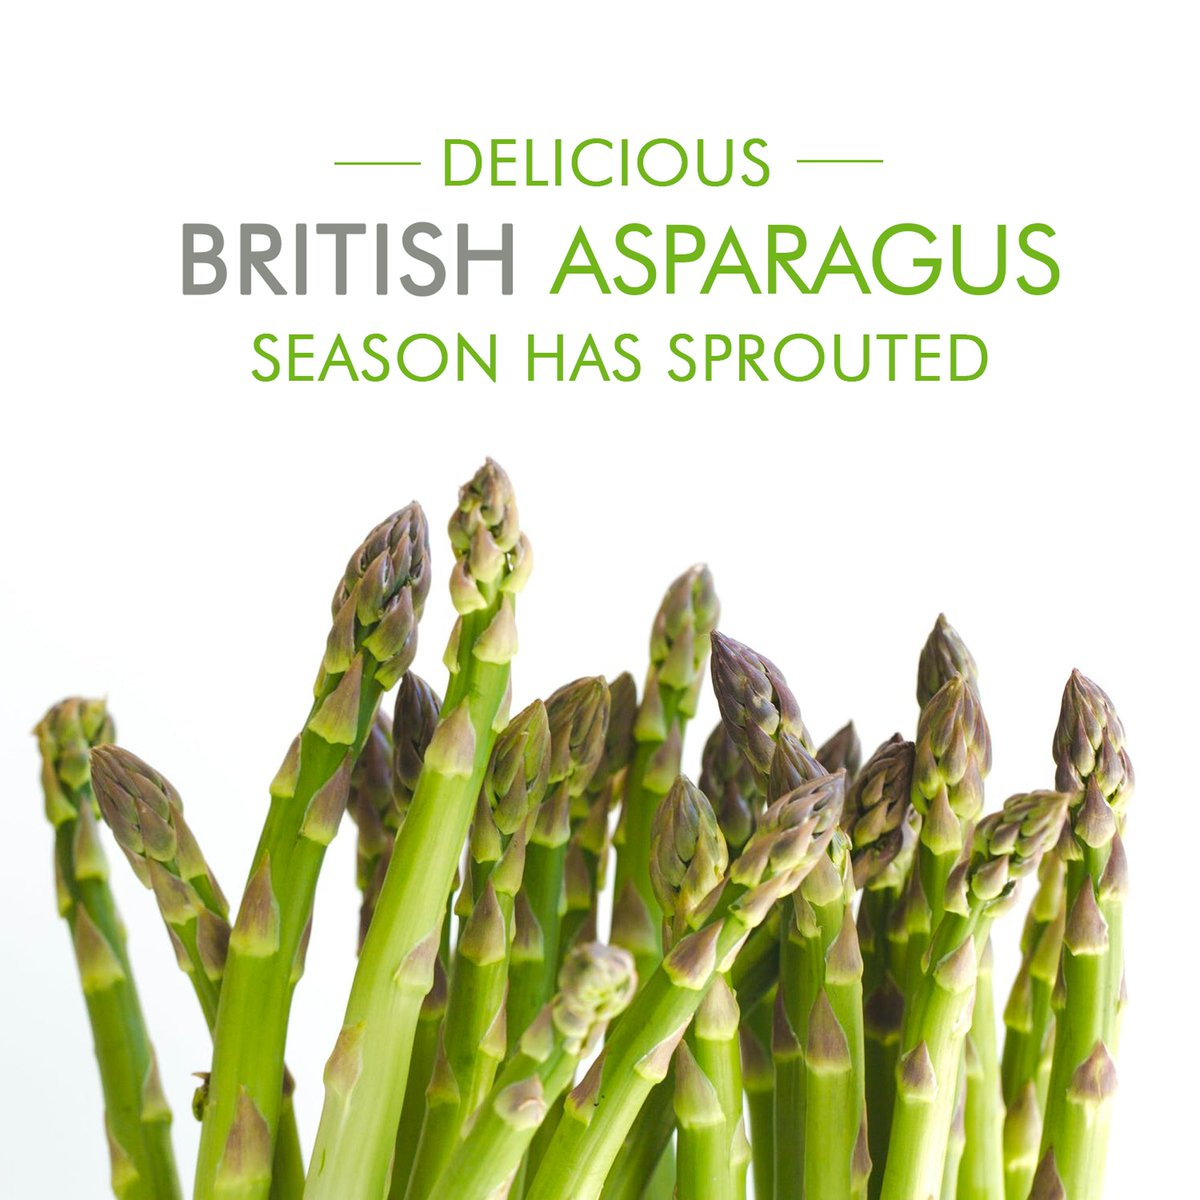 British Asparagus season has officially started! We only have around 8 weeks of the year to enjoy this fantastic produce. It will be available in the Market from our traders #eatfreshinbrum #britishasparagus #theseasonishere #birmingham #wholesale #freshproducepic.twitter.com/MoG0MvhQoS